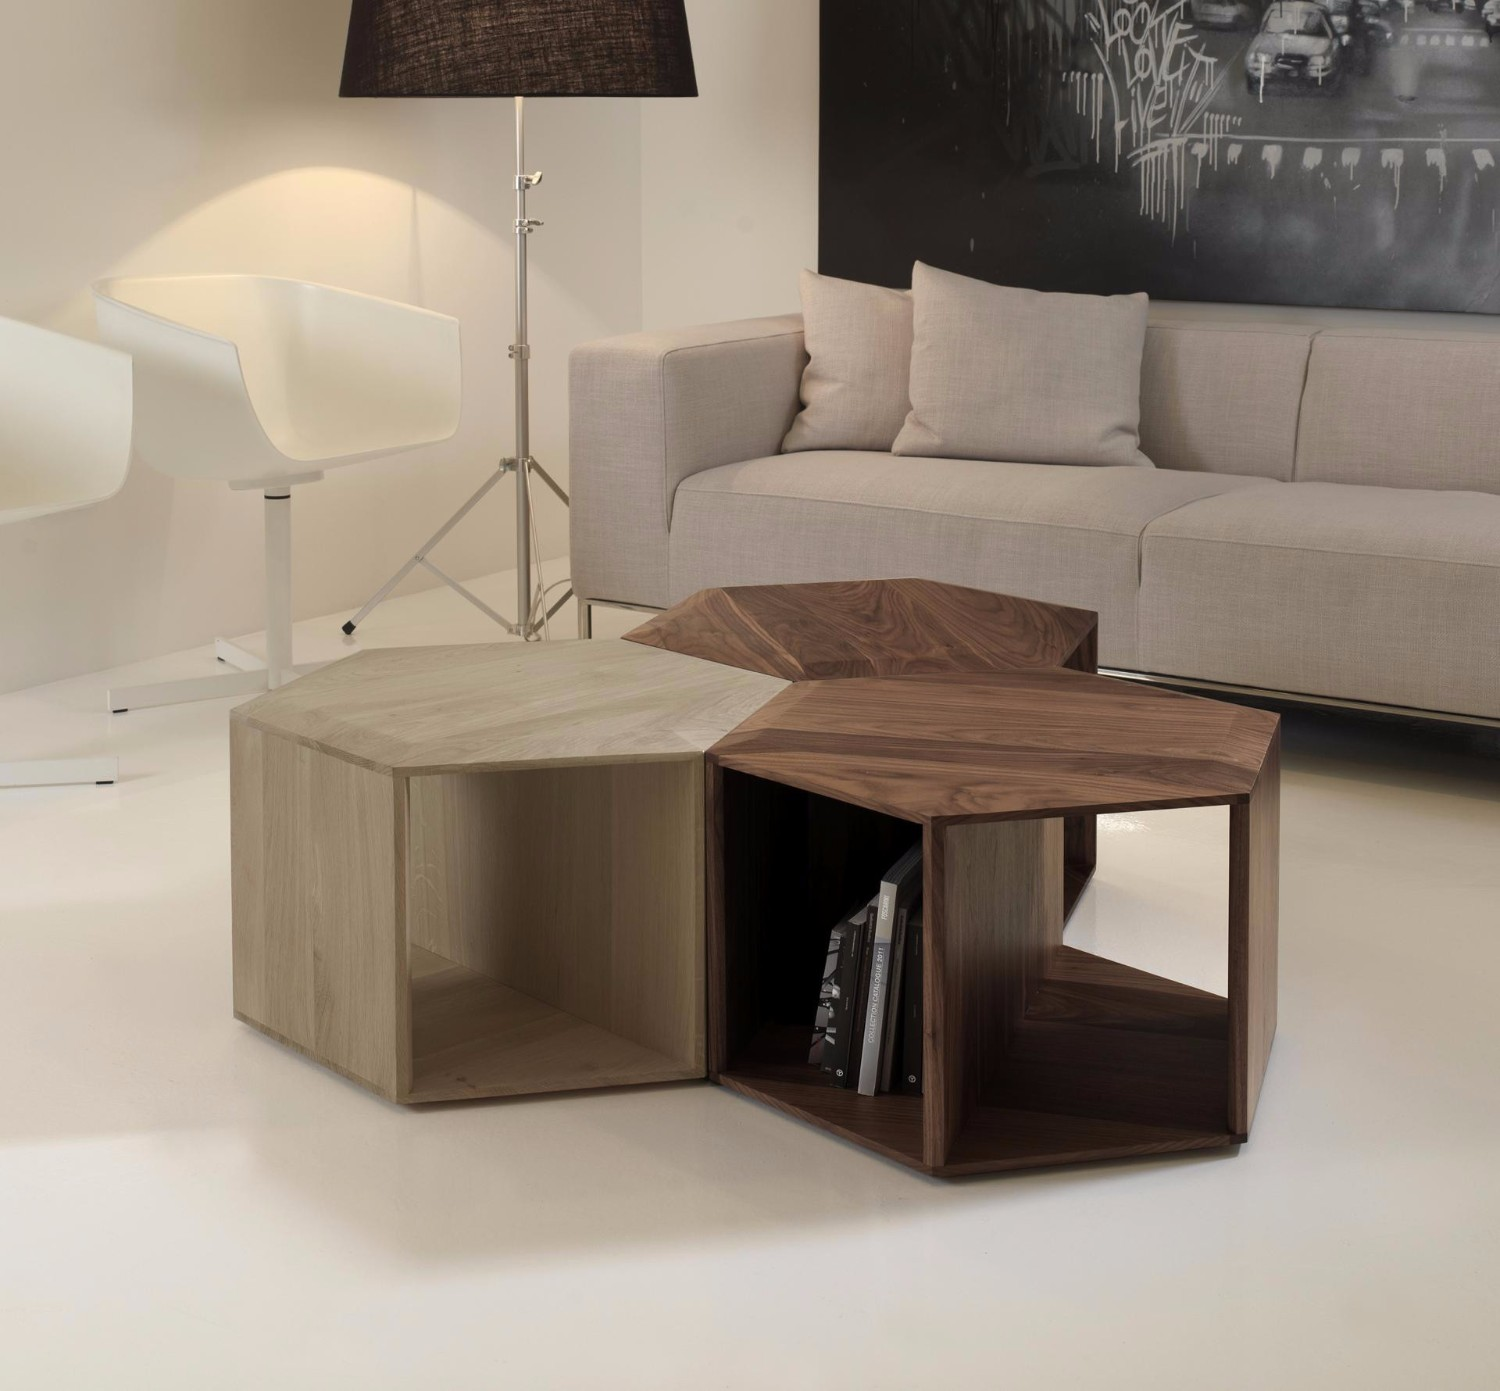 10 Inspiring Minimalist Tables Coffee Tables 10 Inspiring Minimalist Coffee Tables minimalist ct 1500